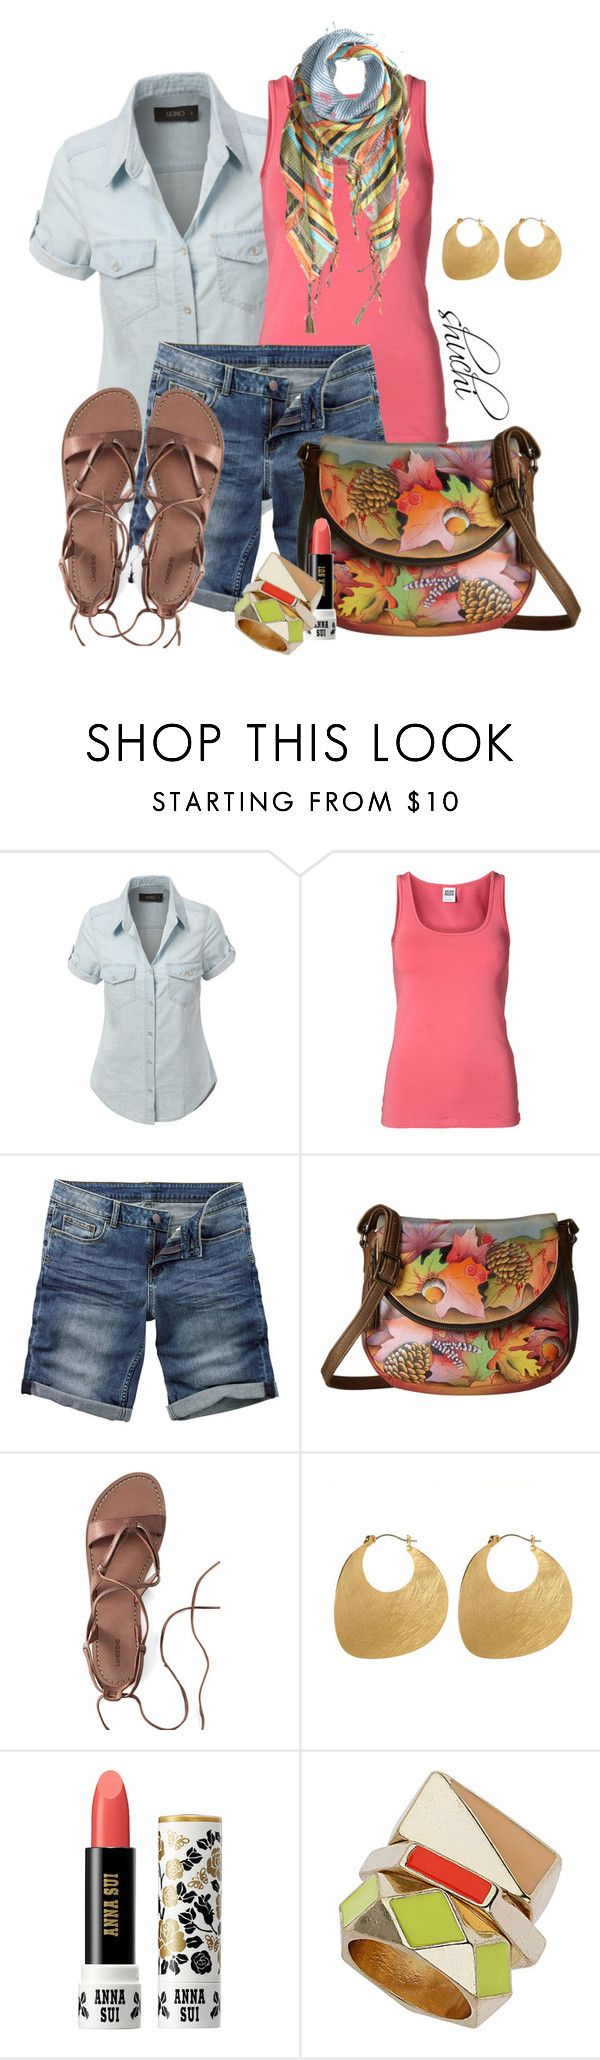 """Anuschka"" by shuchiu ❤ liked on Polyvore featuring LE3NO, Vero Moda, Fat Face, Anuschka, Canvas by Lands' End, Amrita Singh, Anna Sui, Topshop, Sete Di Jaipur and tanktop"